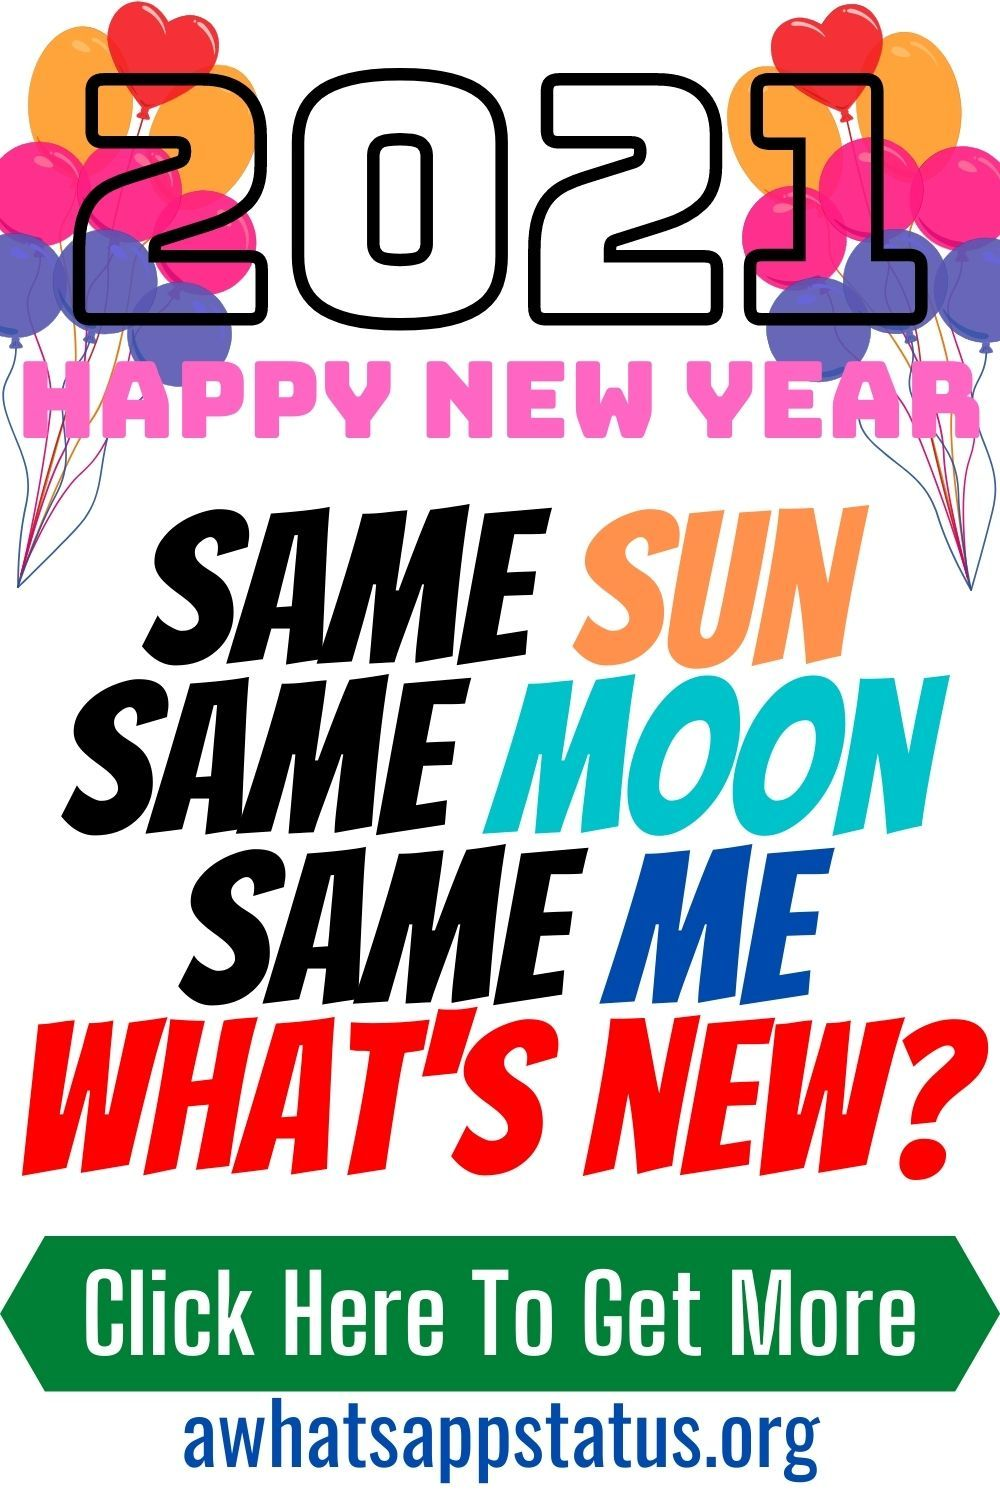 45 Happy New Year 2021 Quotes Funny Same Sun Same Moon Same Me What S New Funny Quotes New Year Quotes Funny Hilarious Quotes About New Year